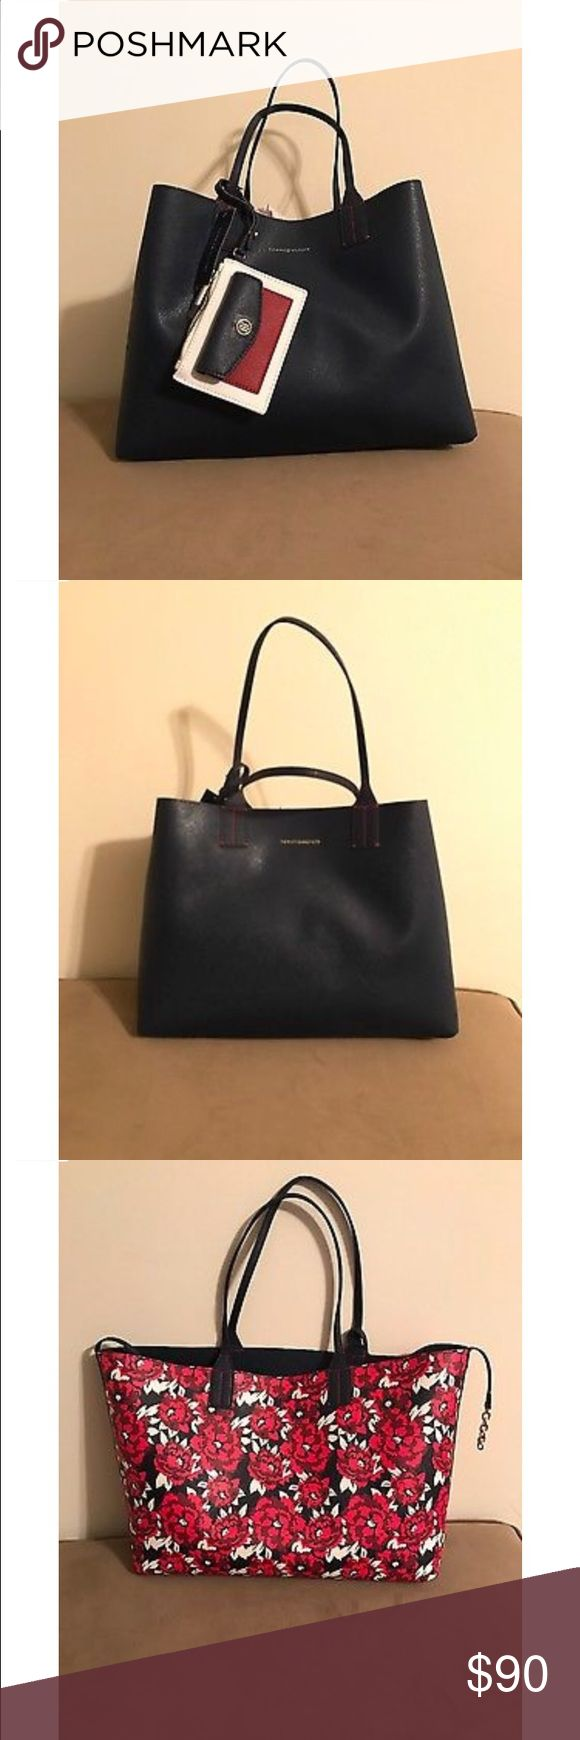 Tommy Hilfiger reversible tote bag Reversible tote bag, navy blue and rose. Brand New with Tags, has never been used. Comes with a detachable wallet Tommy Hilfiger Bags Totes